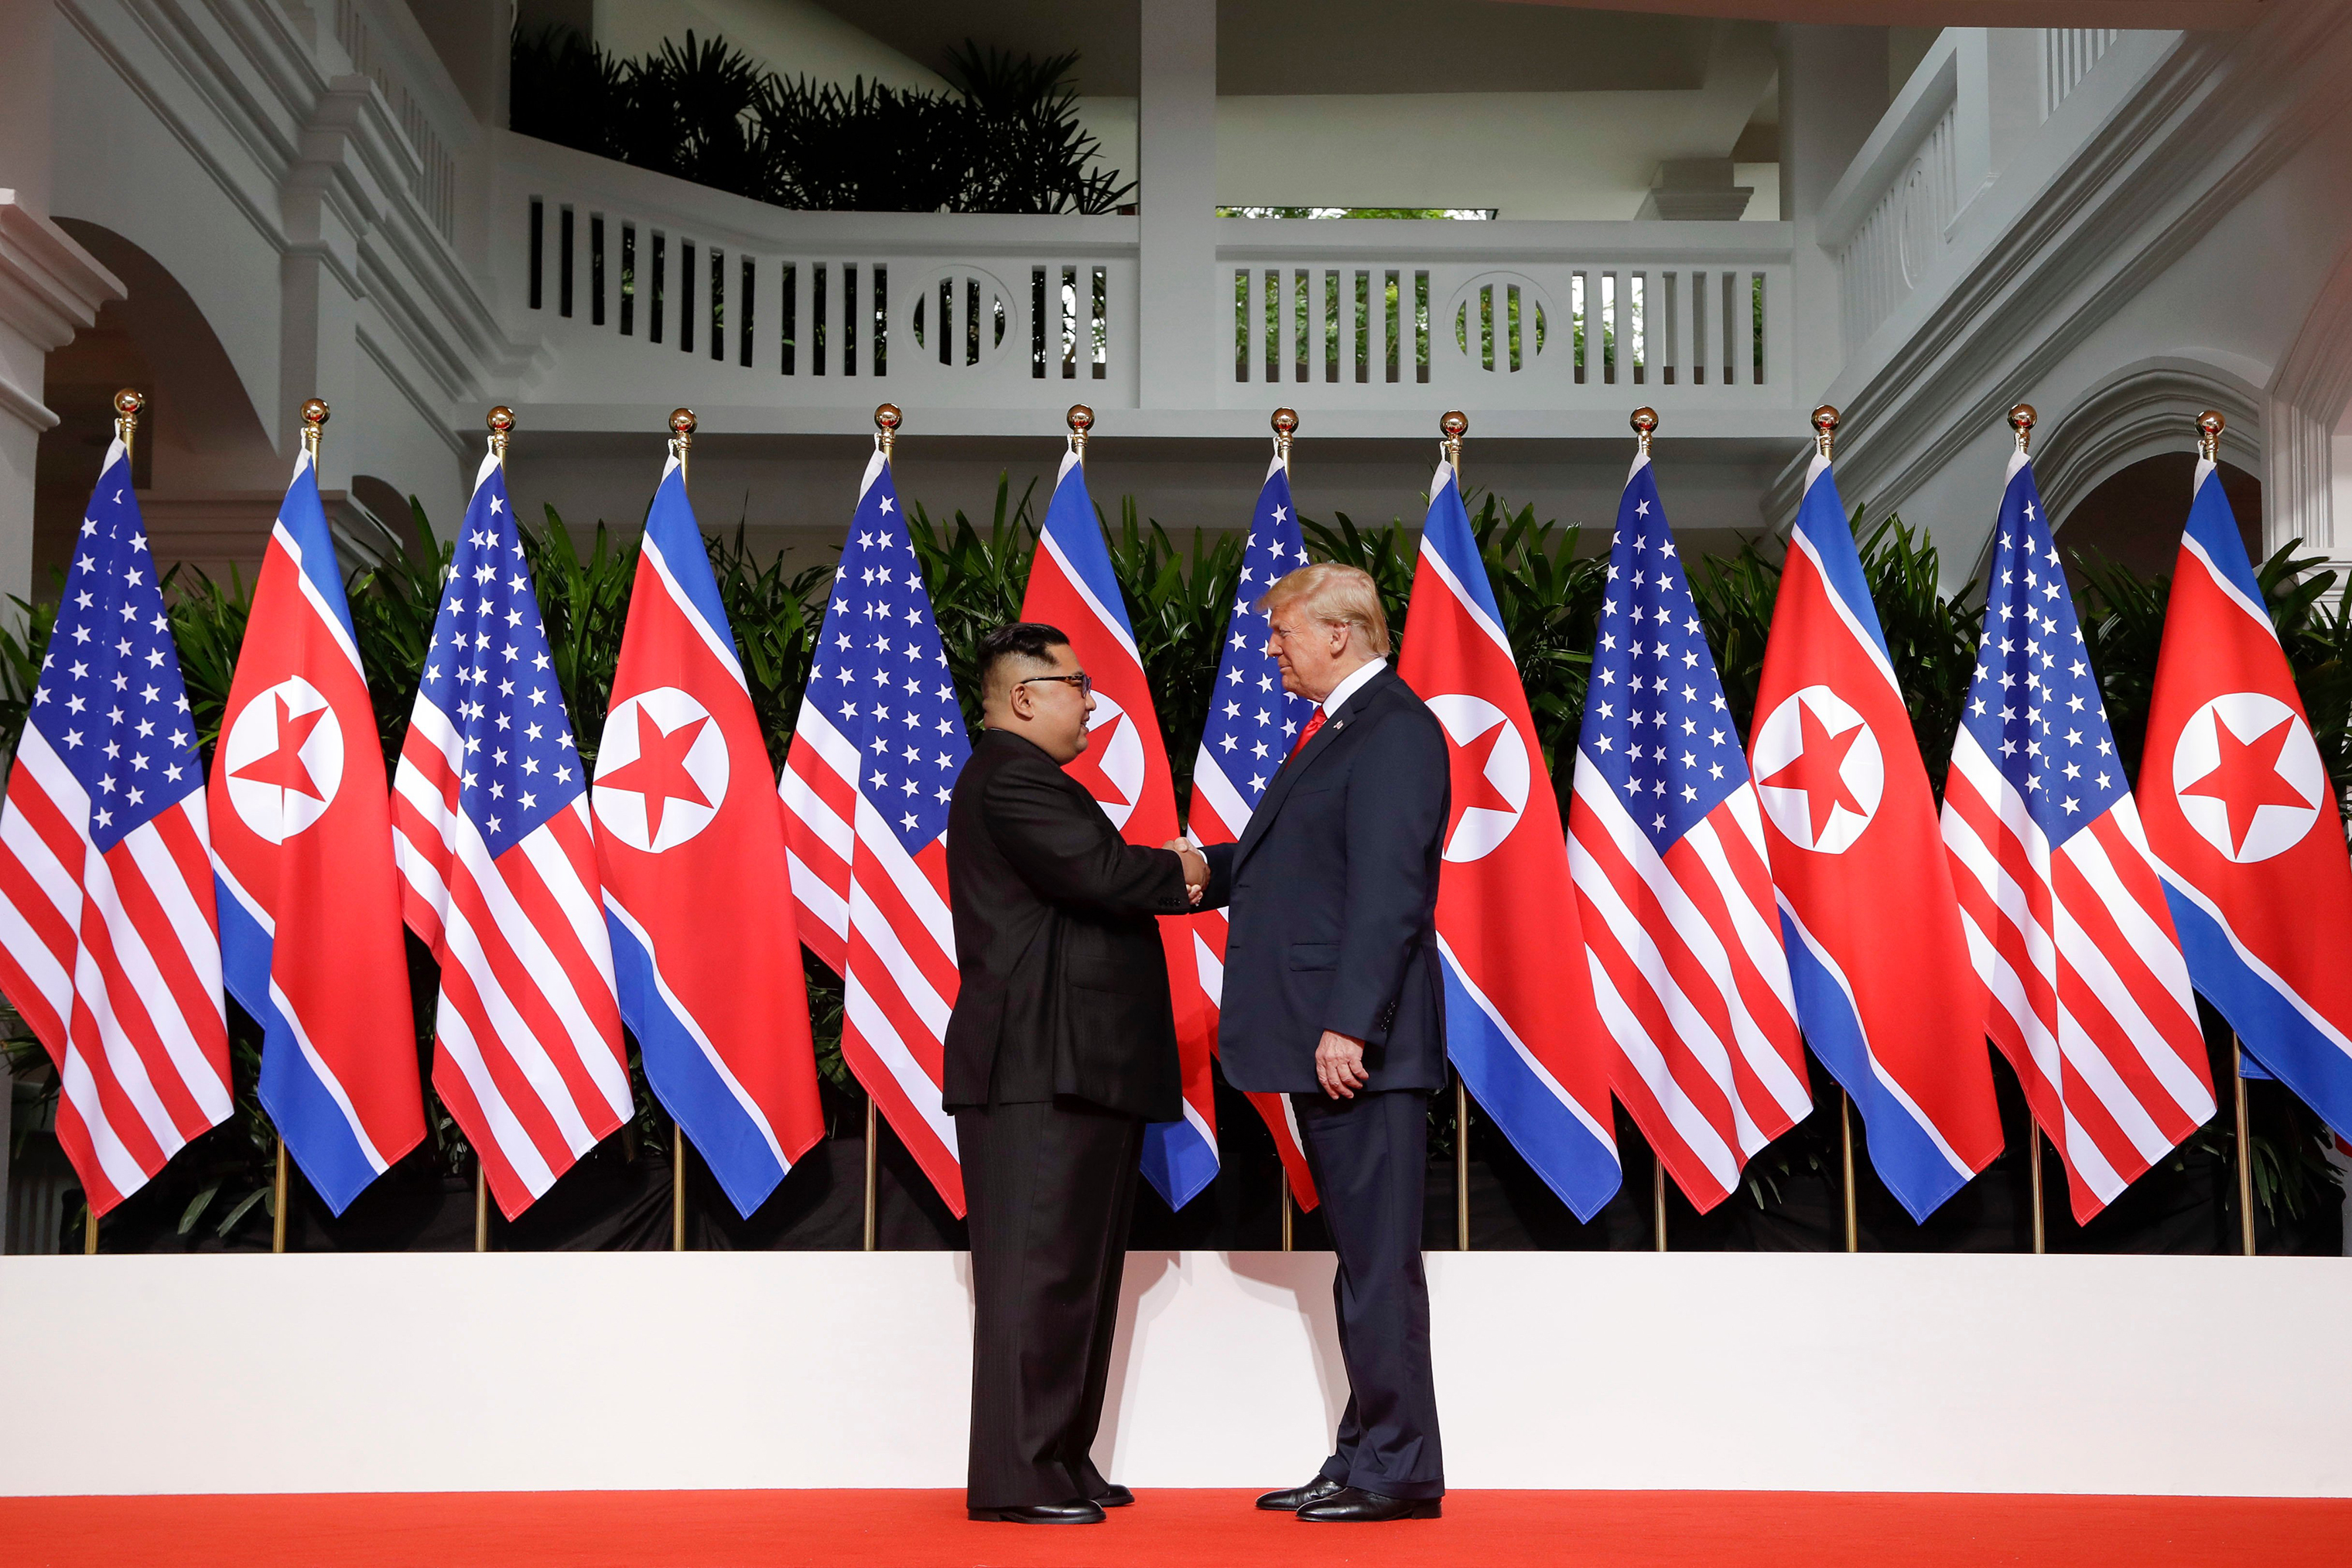 President Trump and North Korea's Kim Jong Un shake hands at their historic summit in Singapore on June 12, 2018.